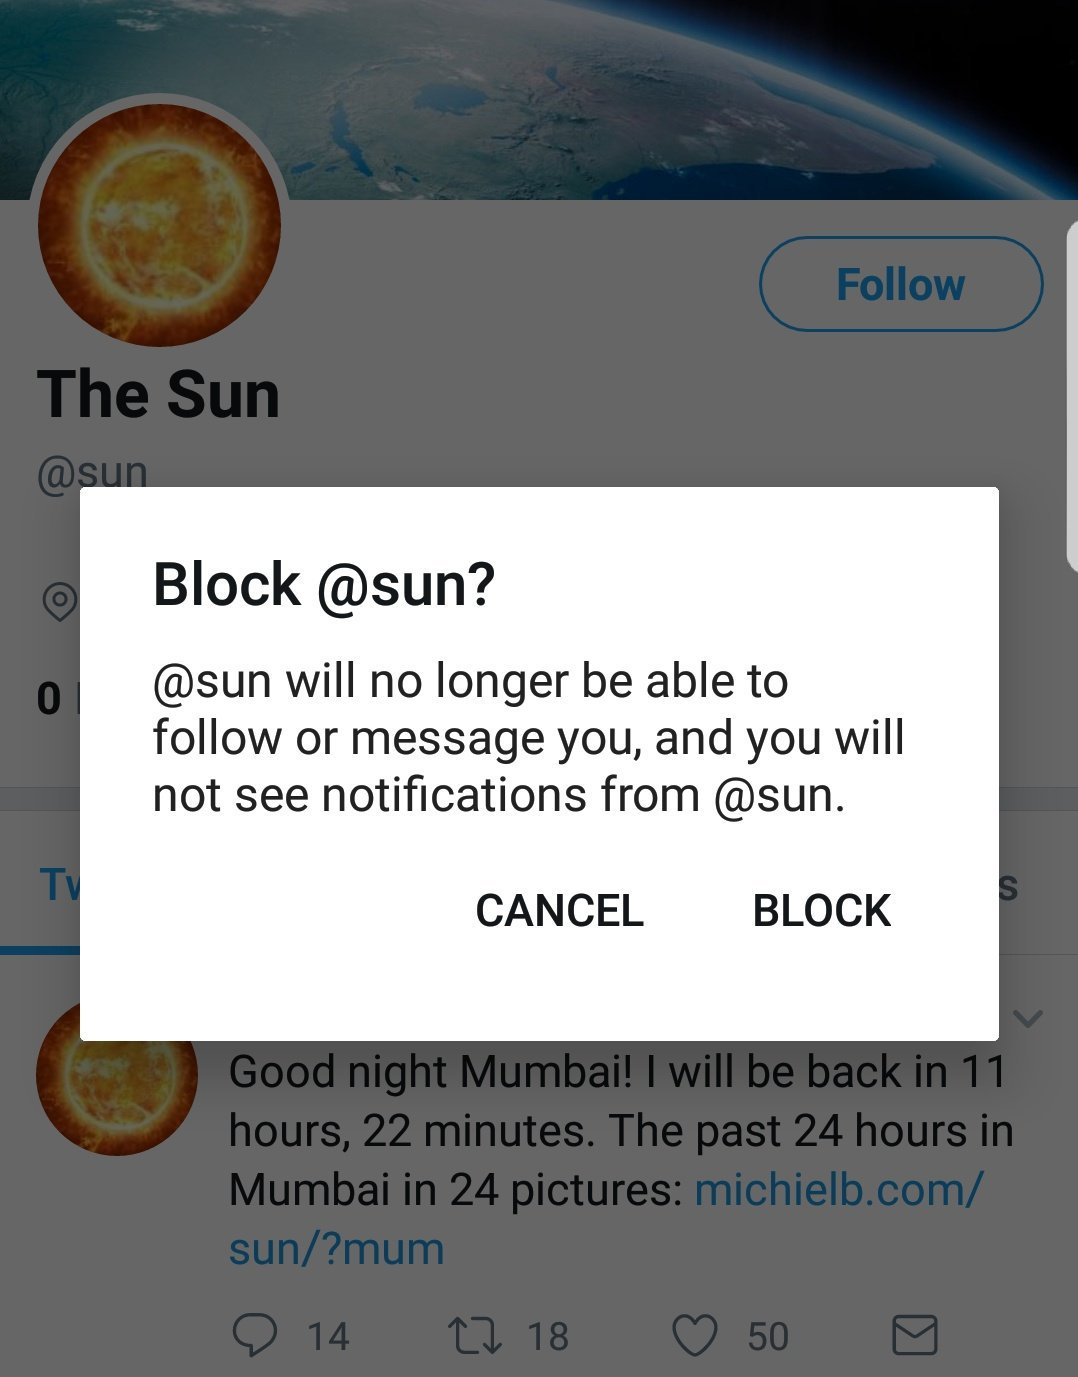 i will block the sun https://t.co/bvLVZvg1wR